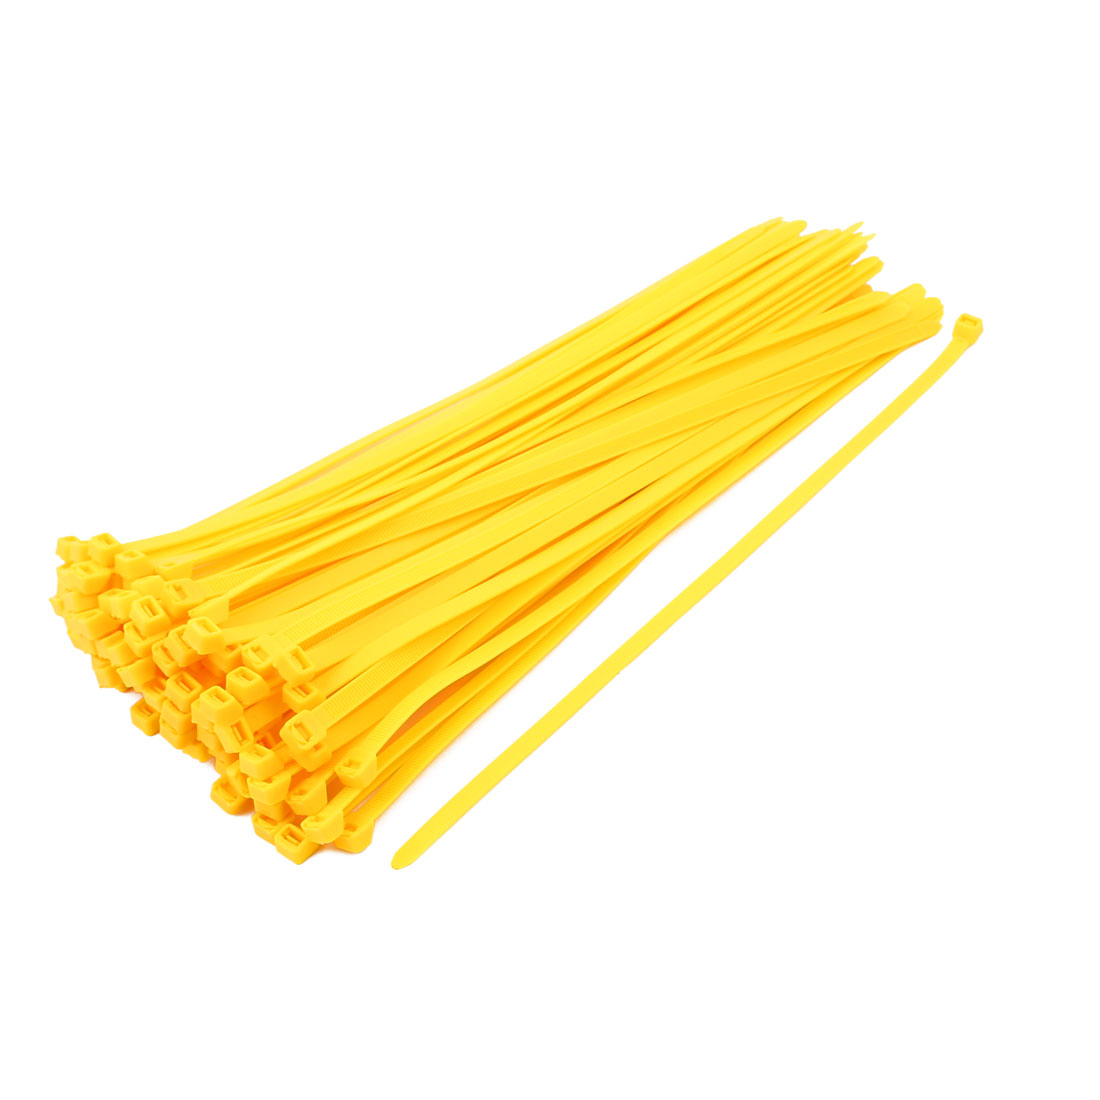 8mm x 350mm Self Locking Nylon Cable Ties Industrial Wire Zip Ties Yellow 100pcs